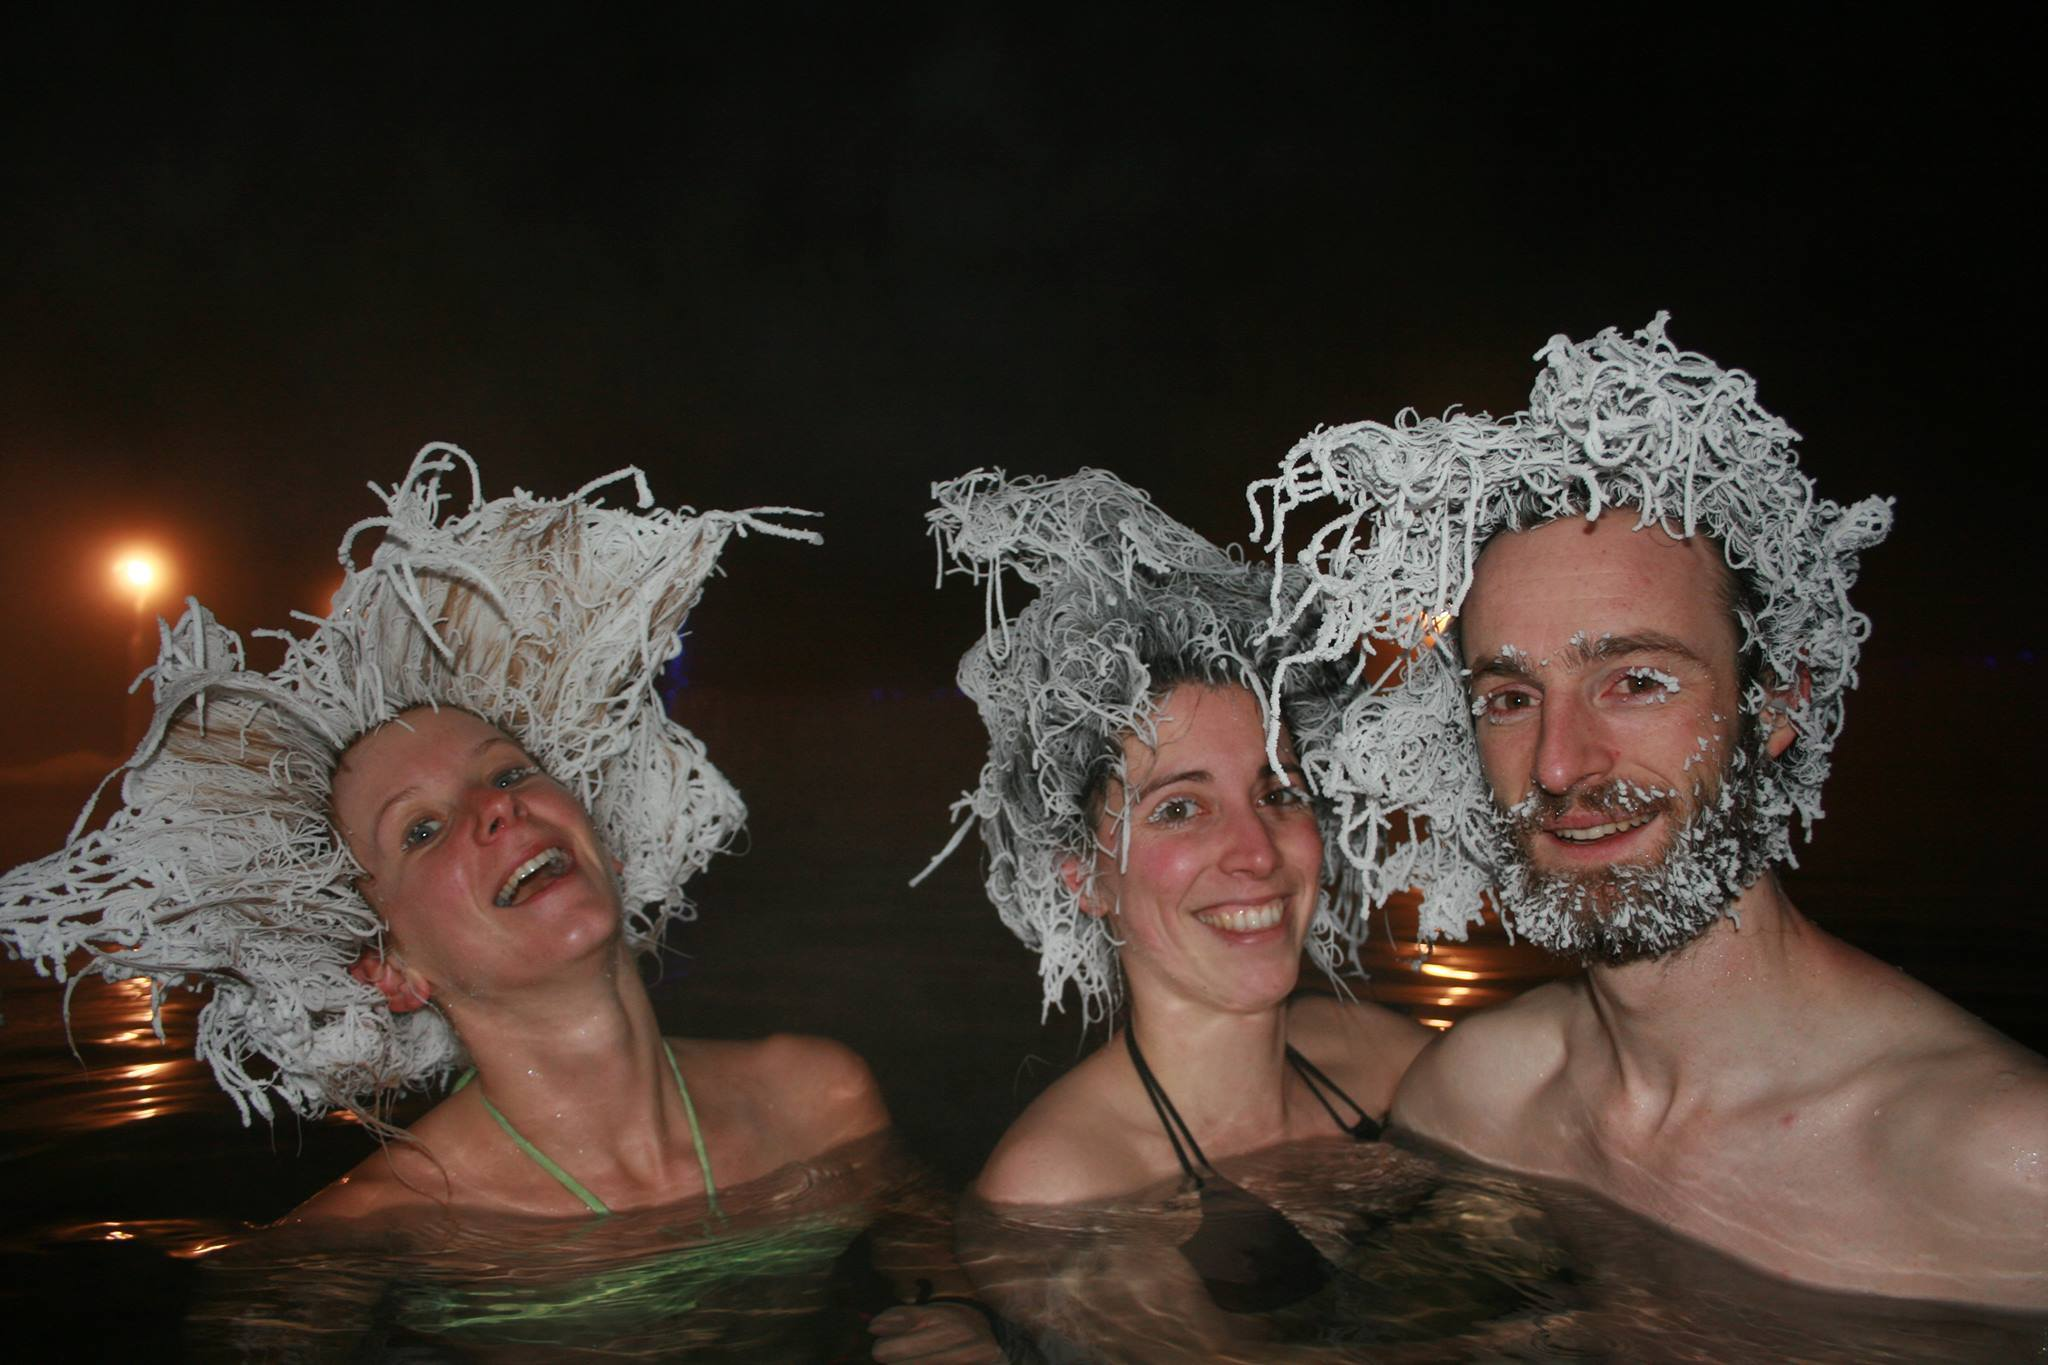 Canadians compete in hair freezing championship